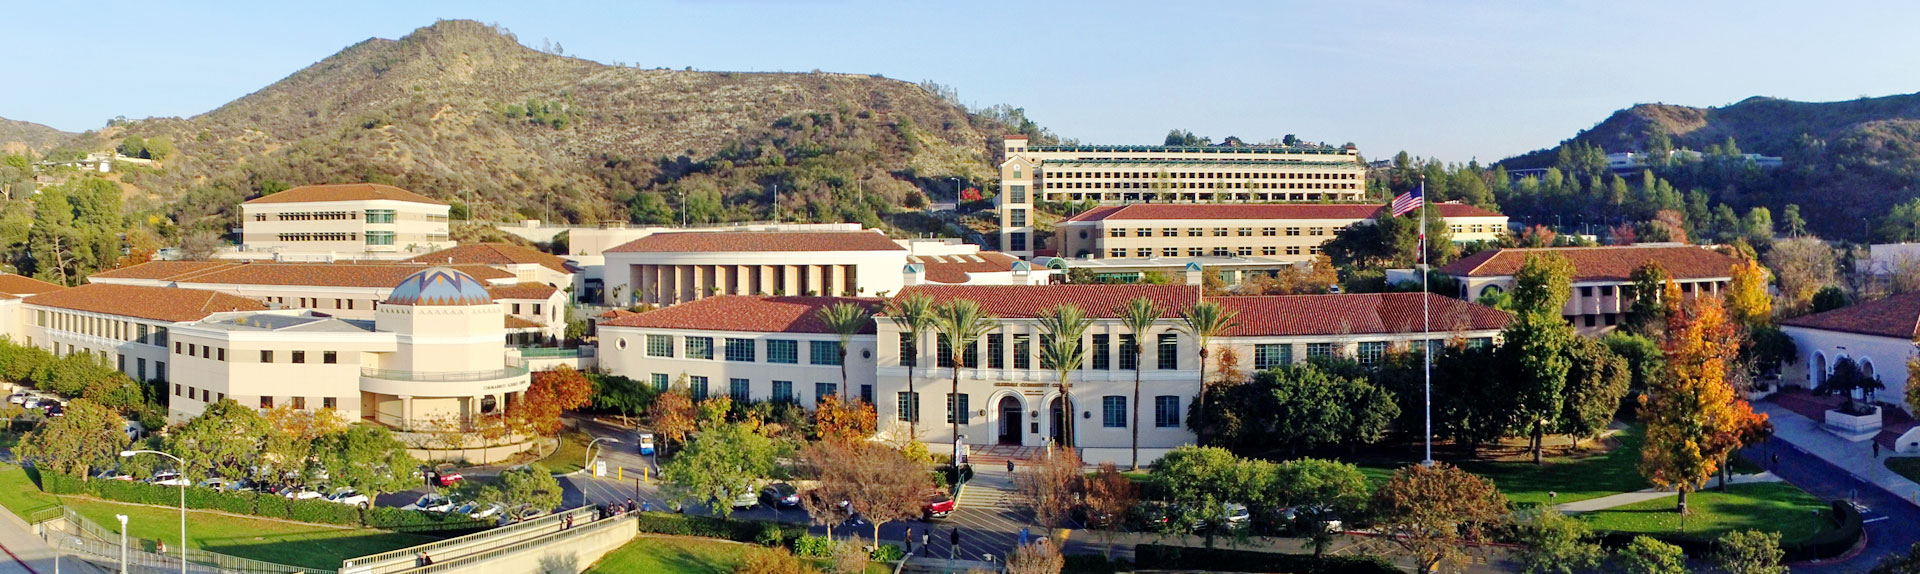 Administration building view from Verdugo road